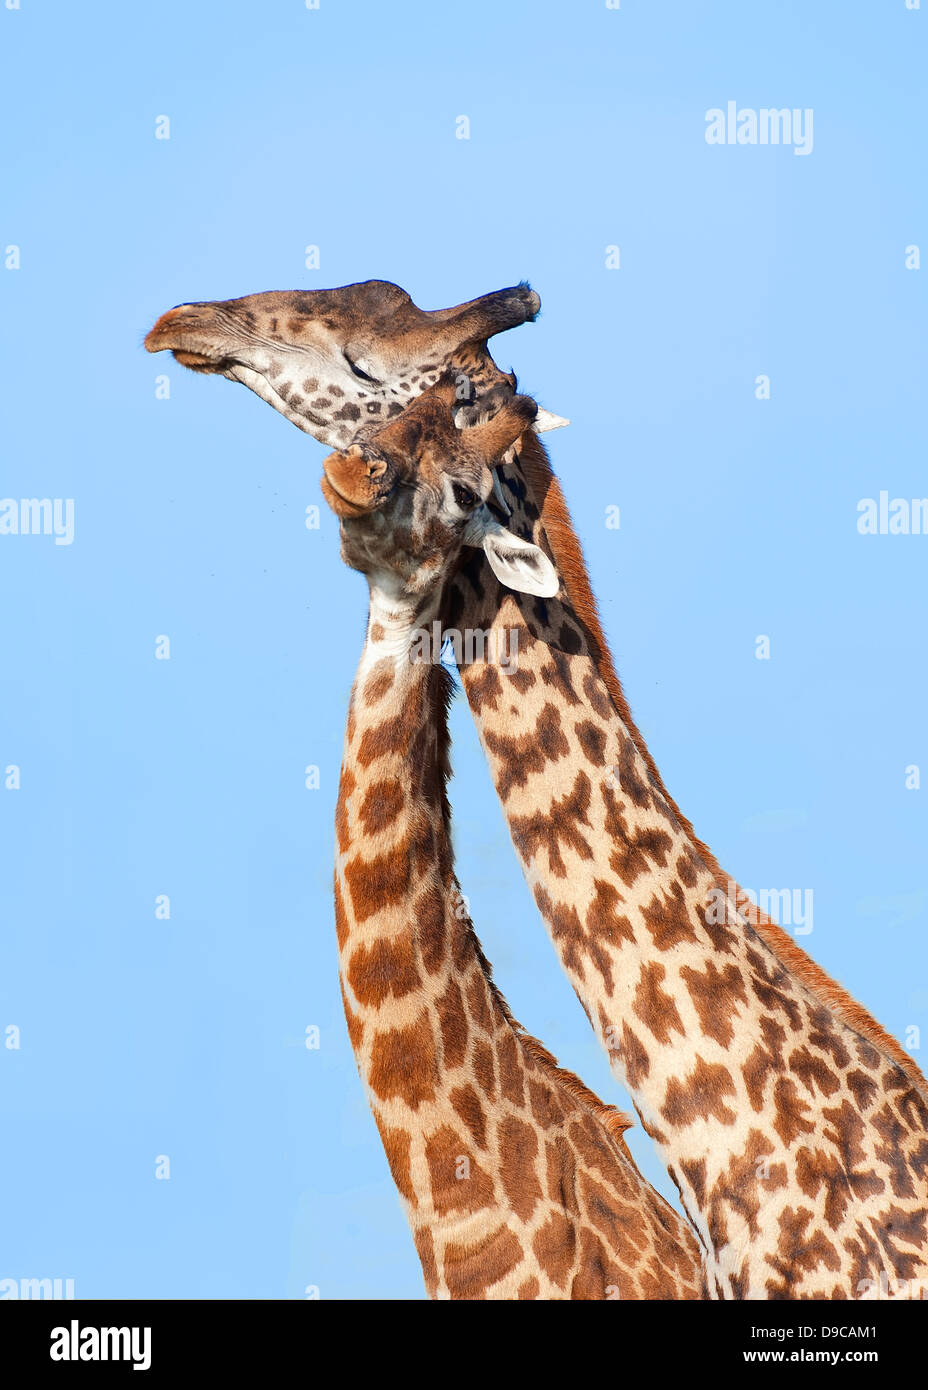 Girafe close-up portrait, Serengeti, Tanzanie Photo Stock